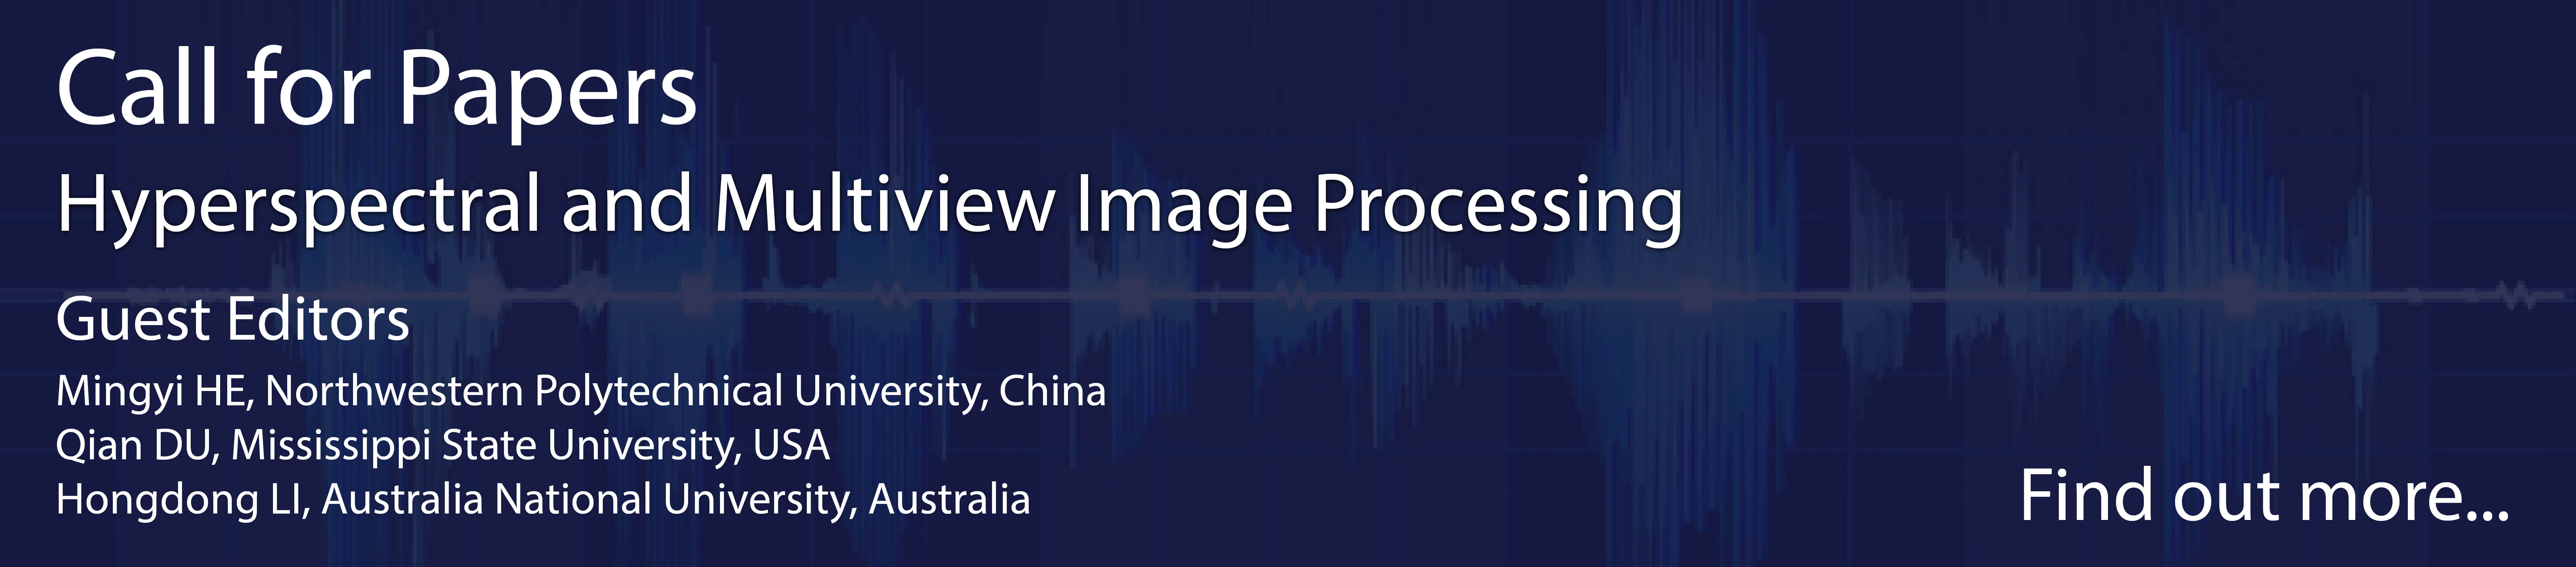 Call for papers - hyperspectral and multiview image processing